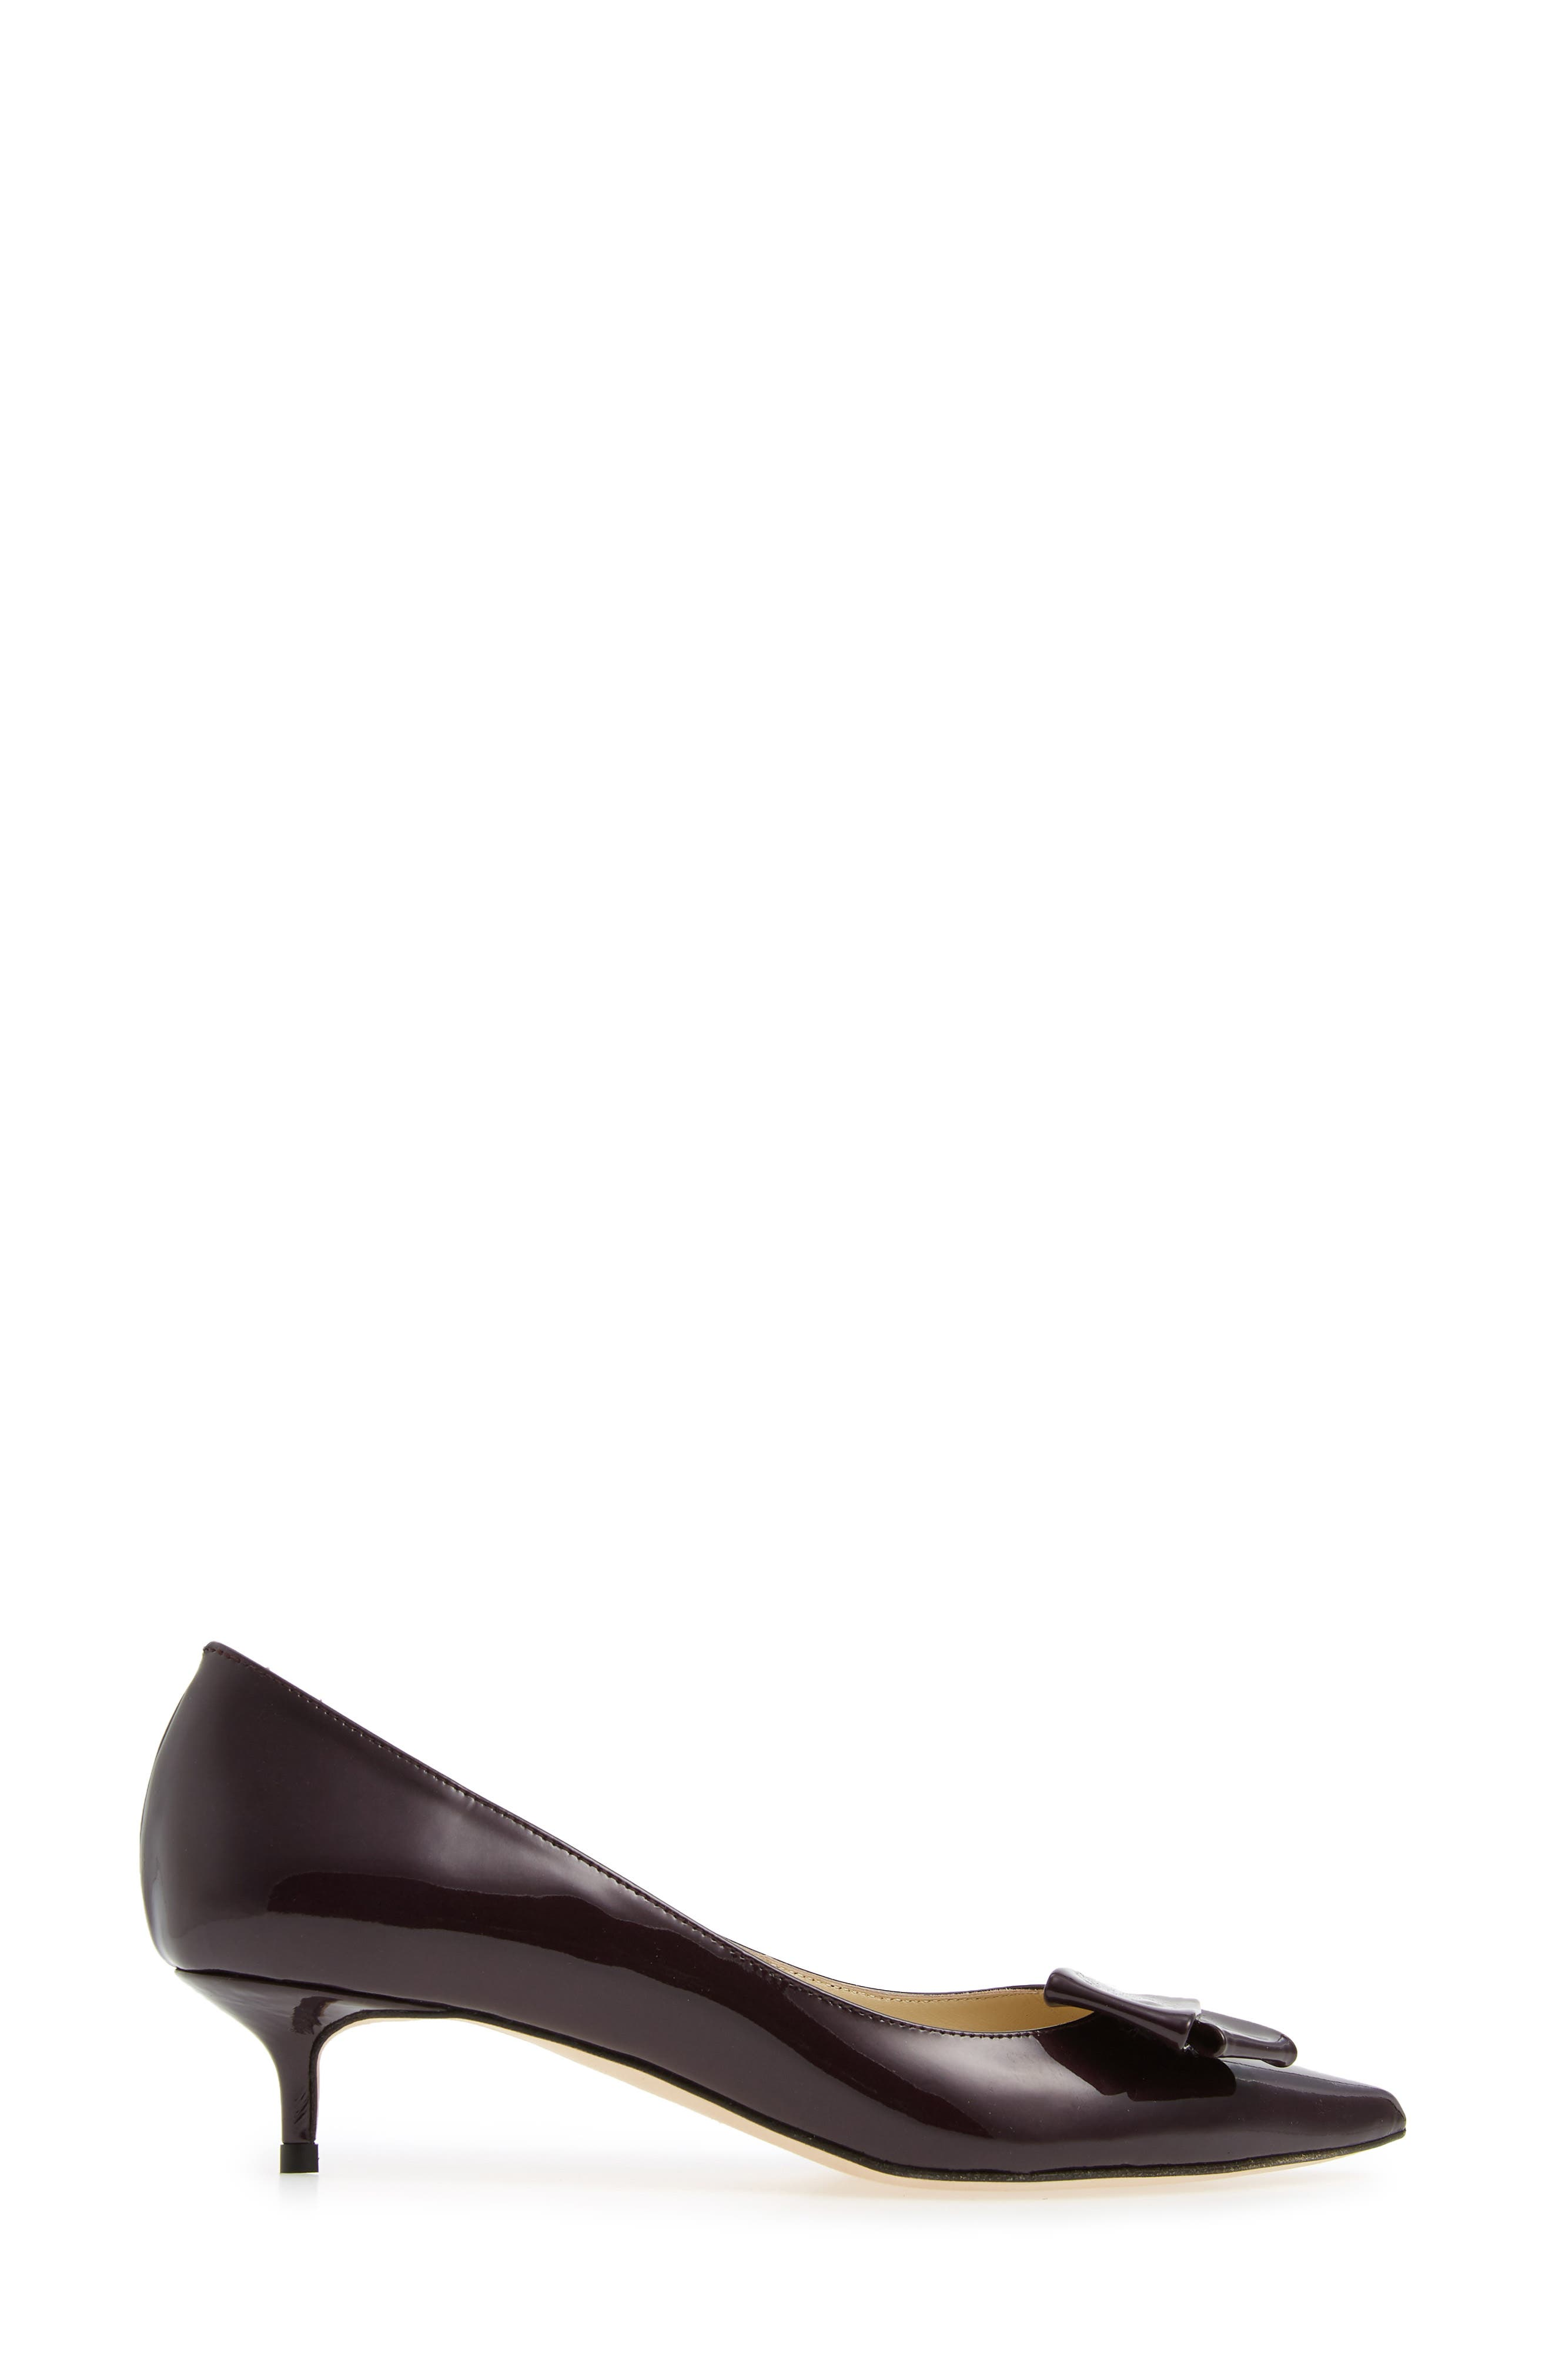 Butter Bliss Pointy Toe Pump,                             Alternate thumbnail 9, color,